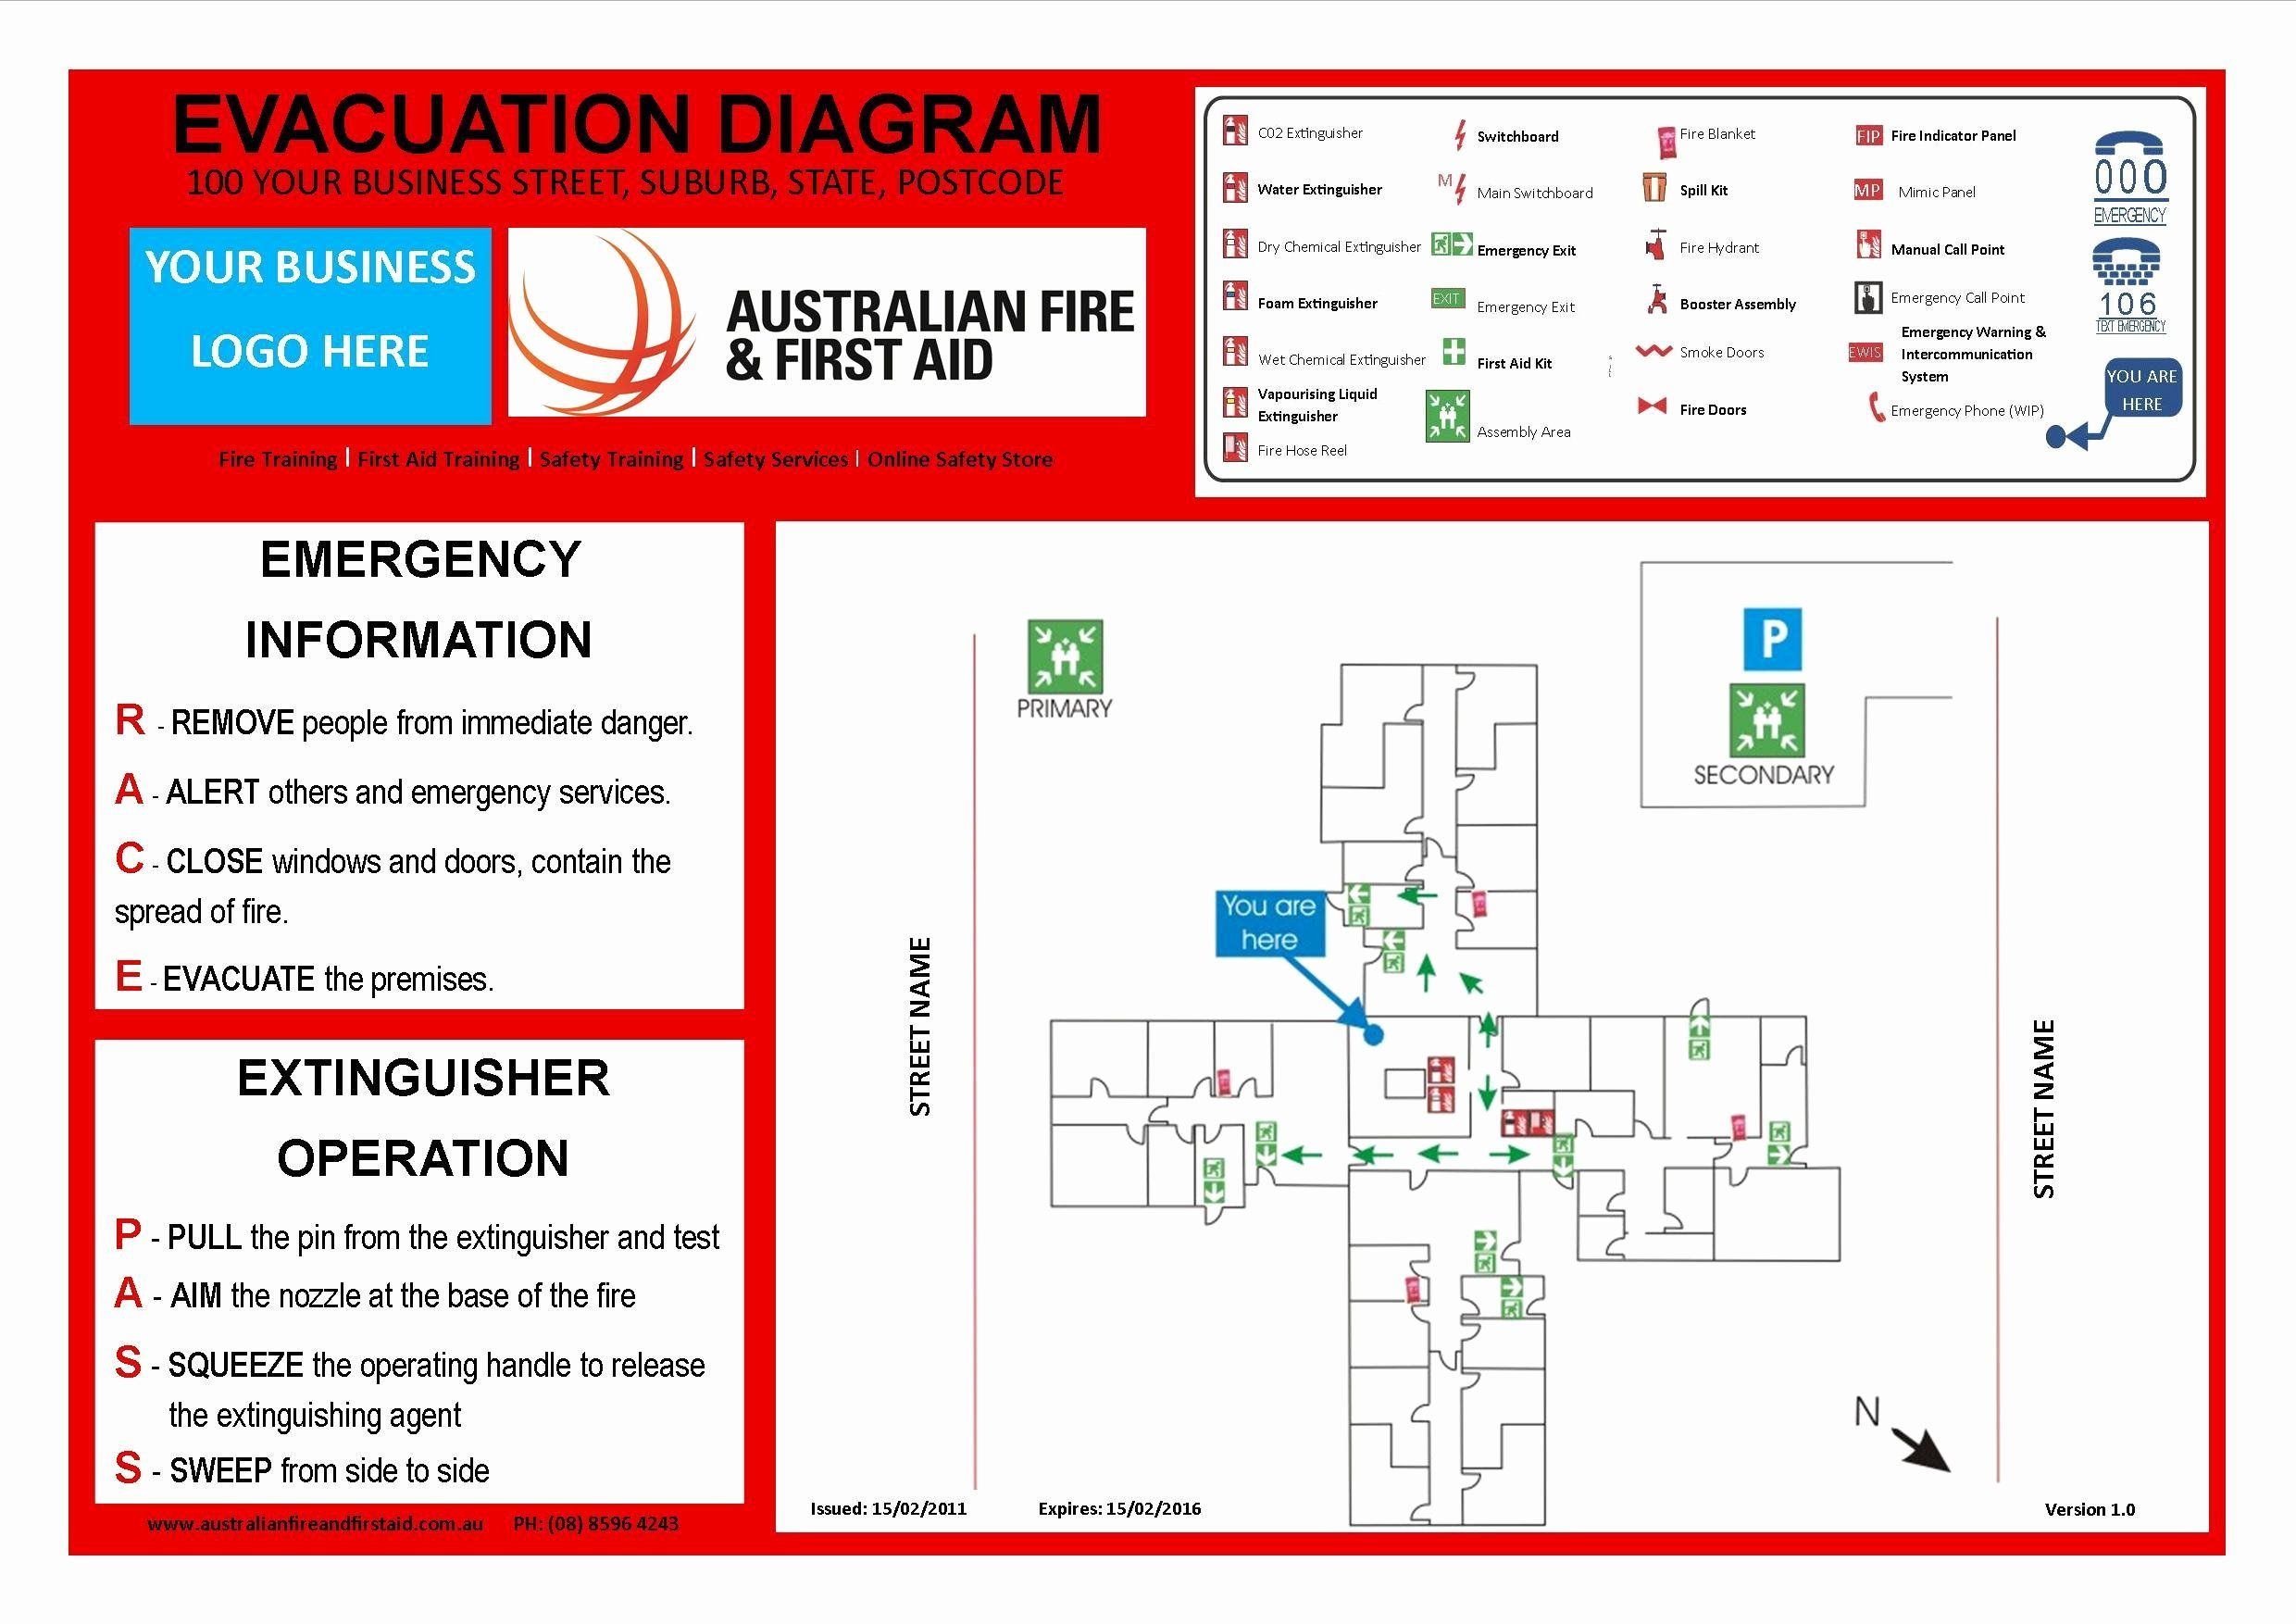 Emergency Exit Plan Template Awesome Emergency Evacuation Template Australia Templates Emergency Evacuation Plan Emergency Response Plan Emergency Evacuation Emergency evacuation plan template free